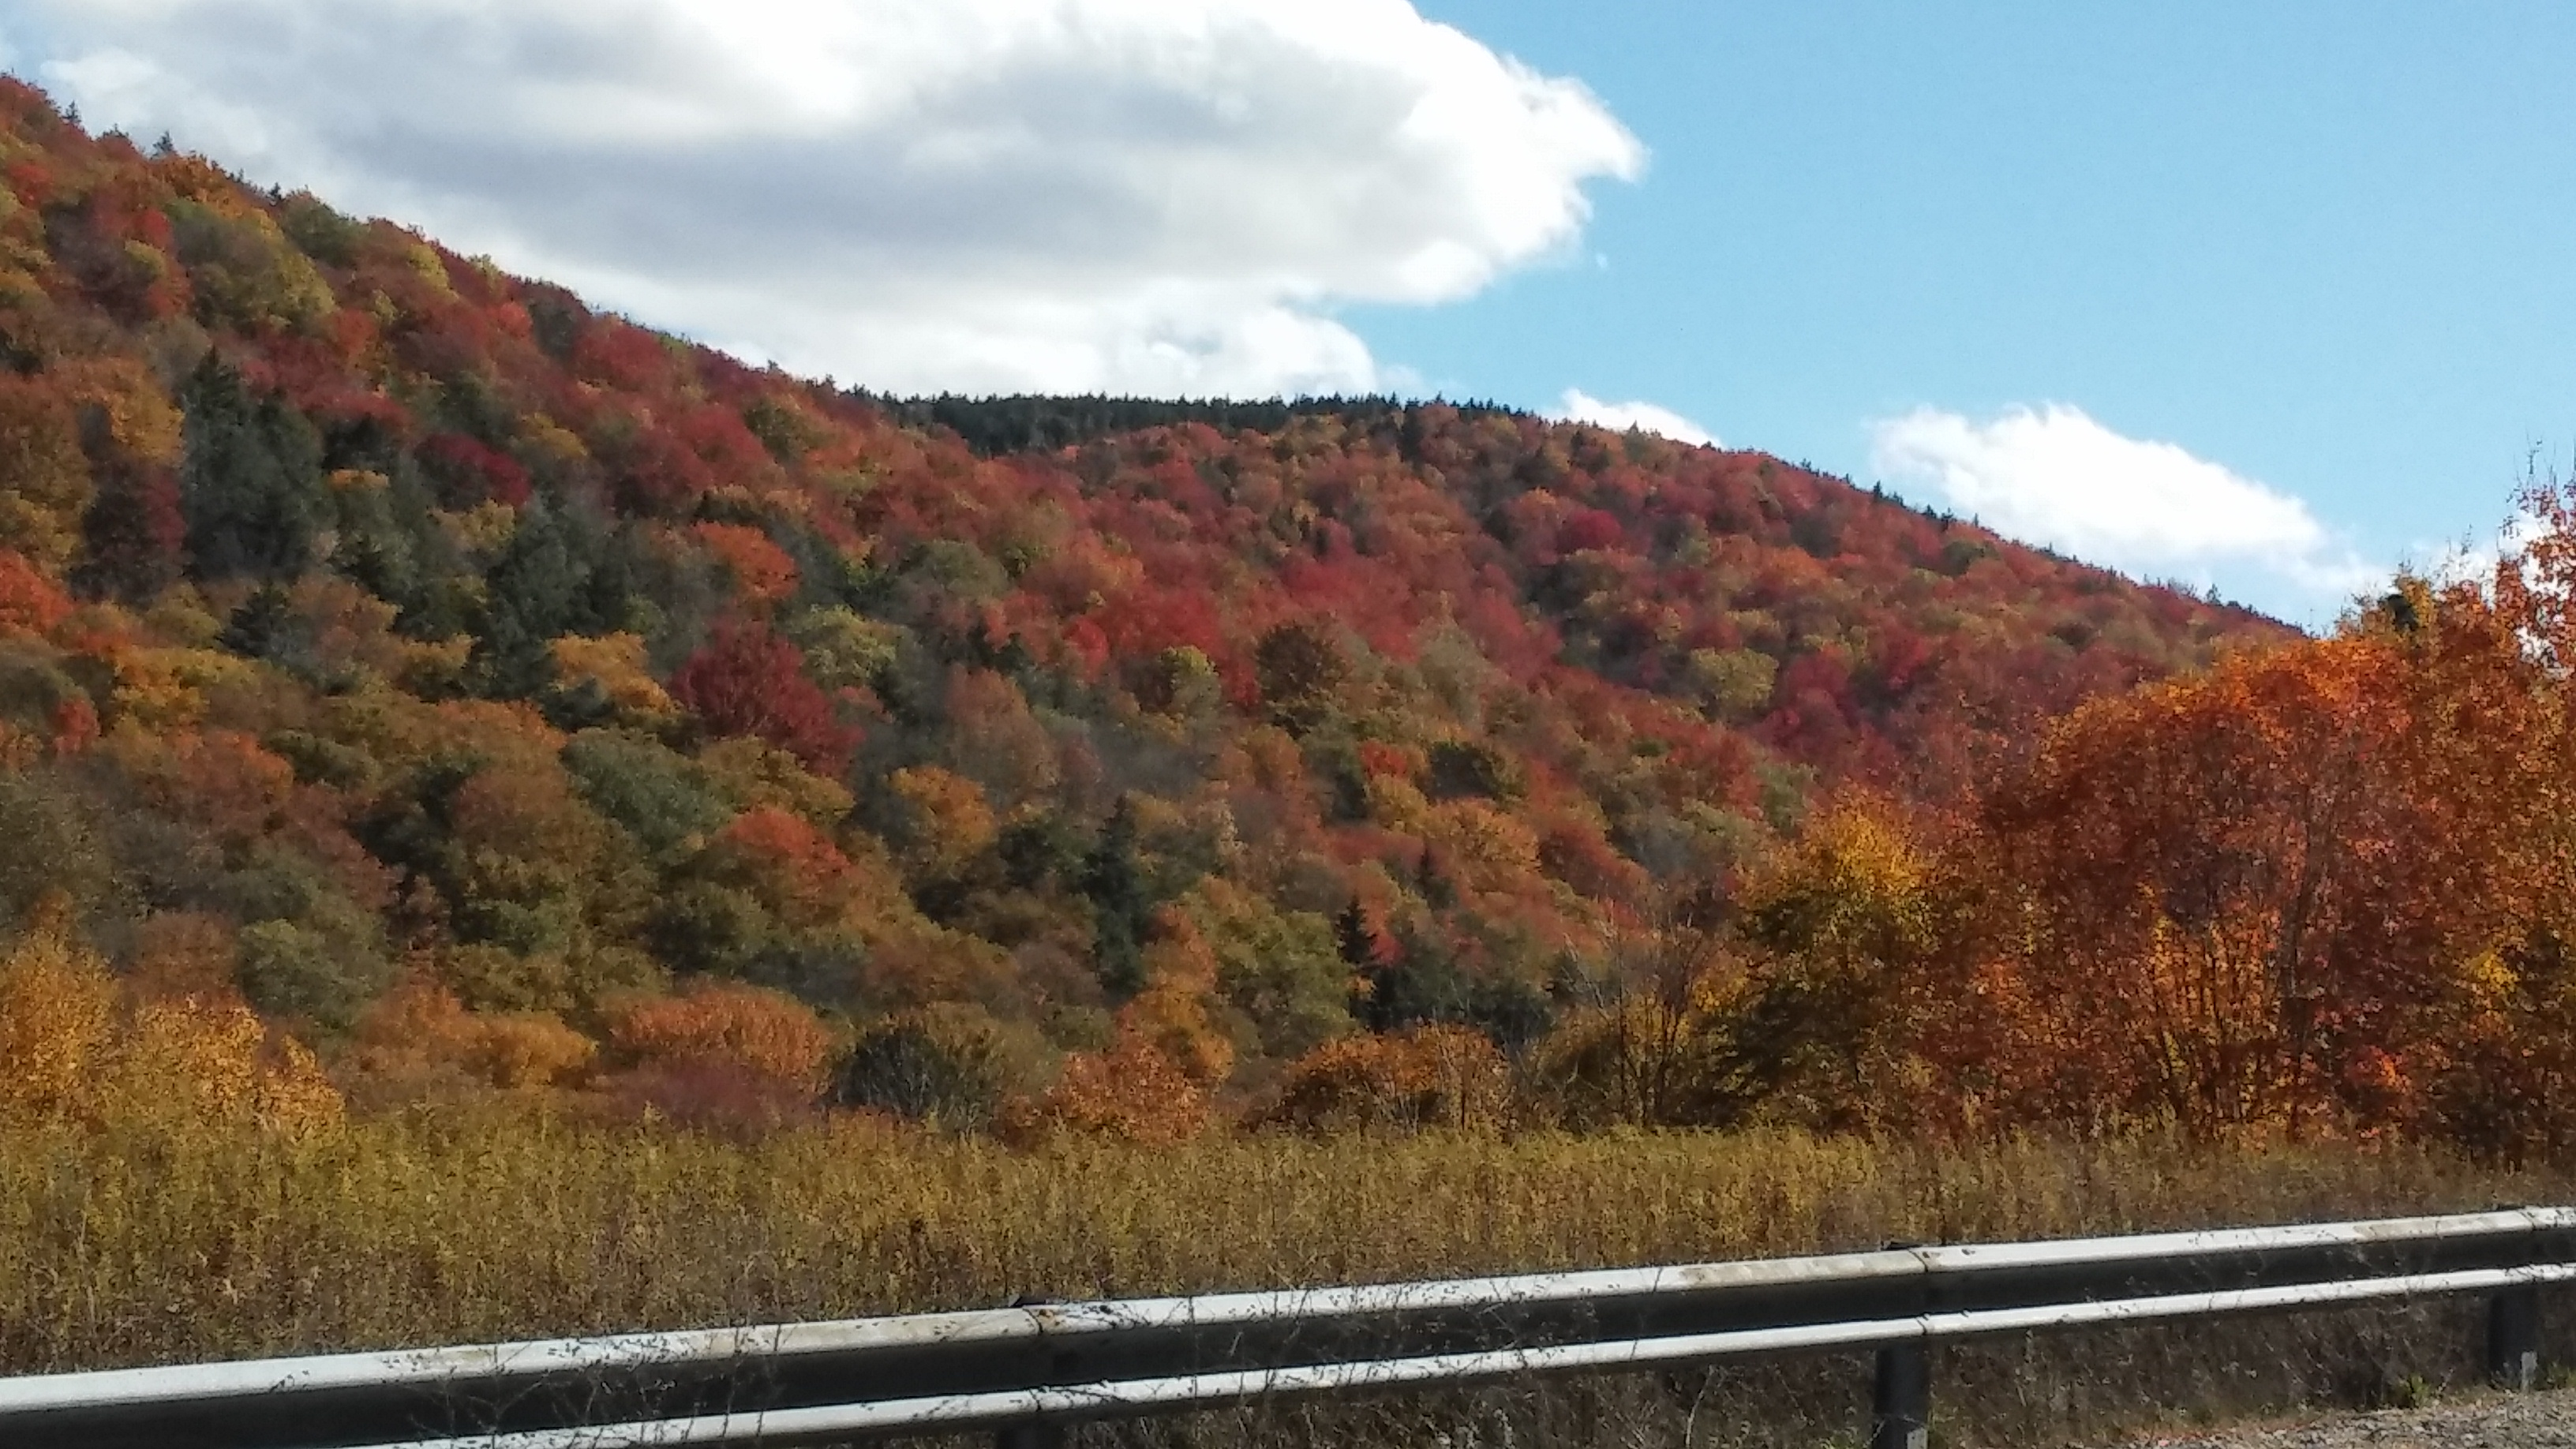 Viet from the scenic highway of the Monongahela National Forest in West Virgina, showing a mix of American wood species in the fall. Photo: Randy Coots